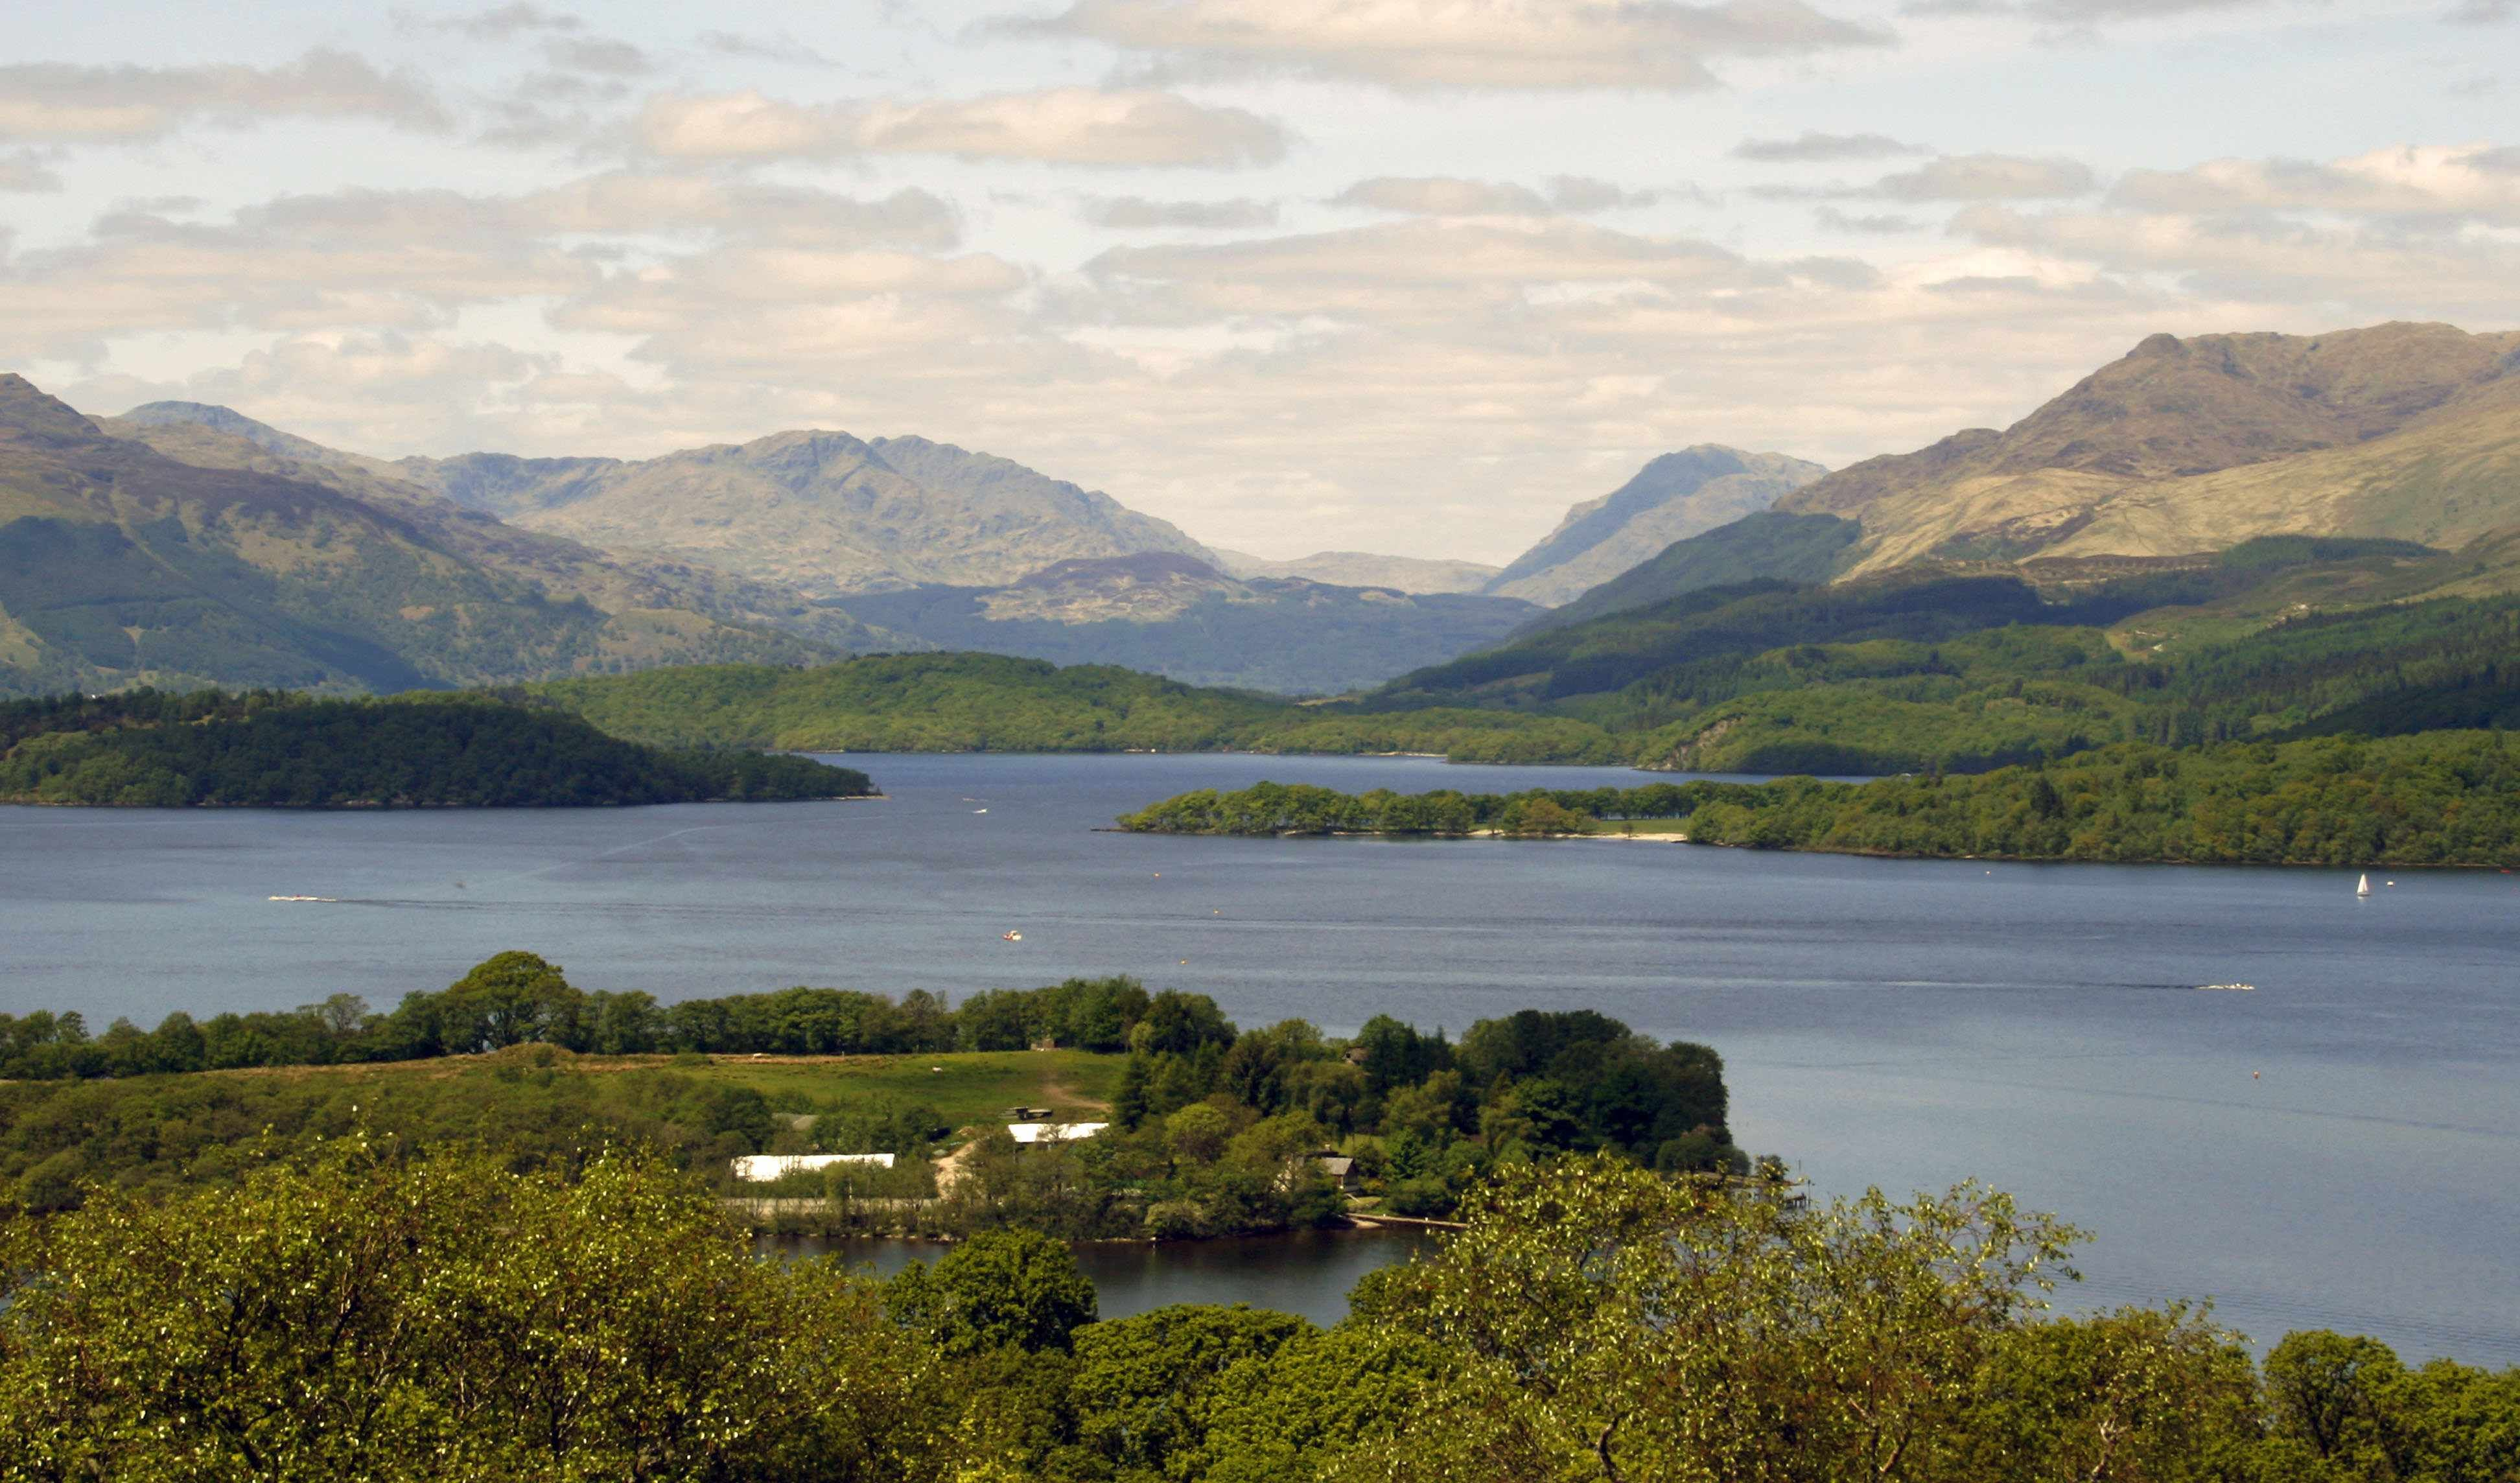 The Loch | Loch Lomond .net #lochlomond